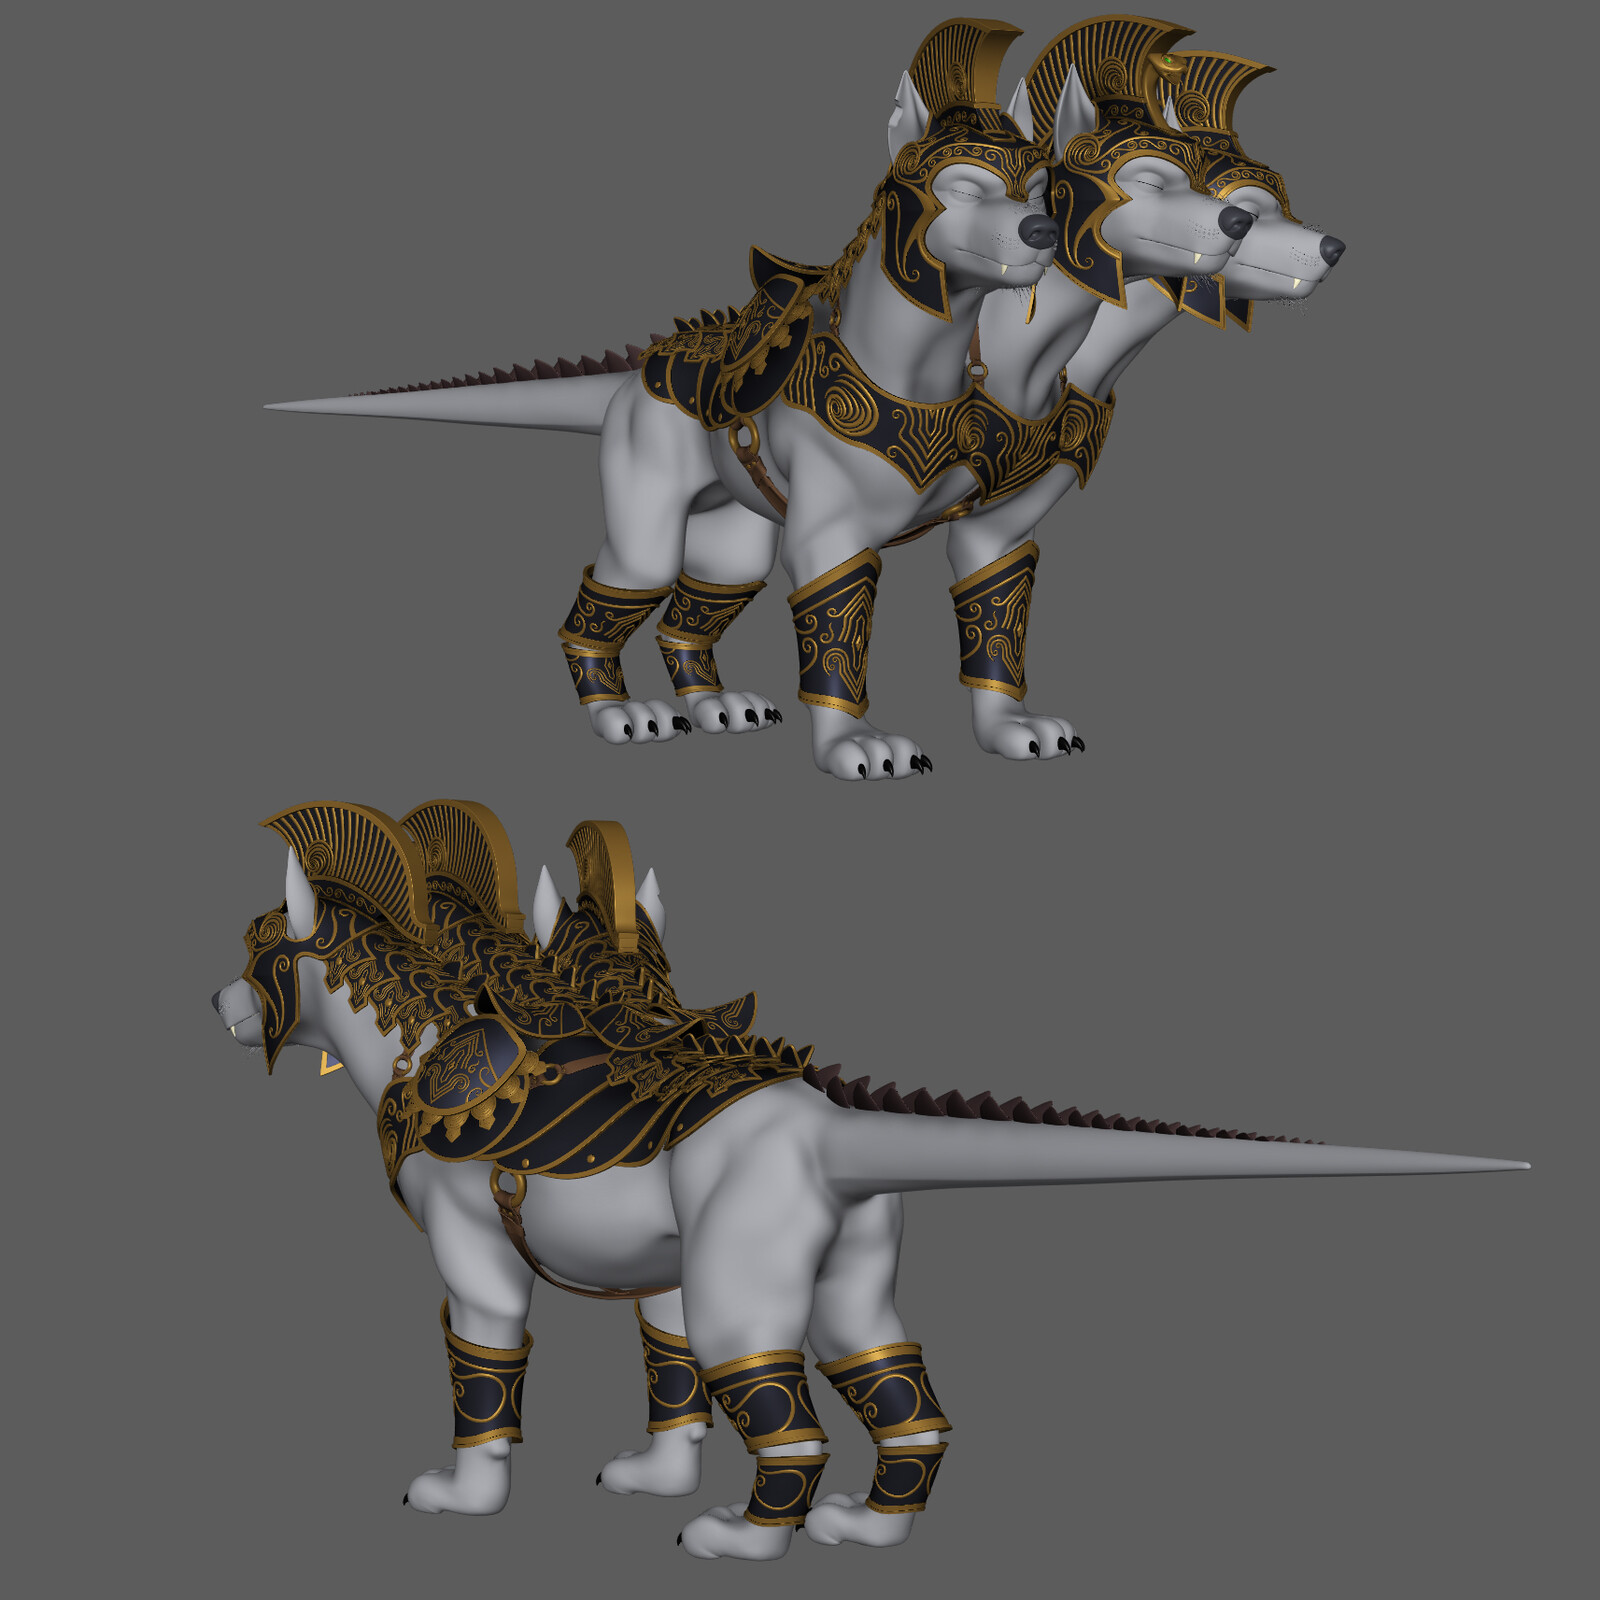 I received the 3D maquette for Cerberus already done by Warner. I had to normalize his face and pose, do retopo  for the production mesh and adjust the armor to make it functional. I also created part of the golden details.